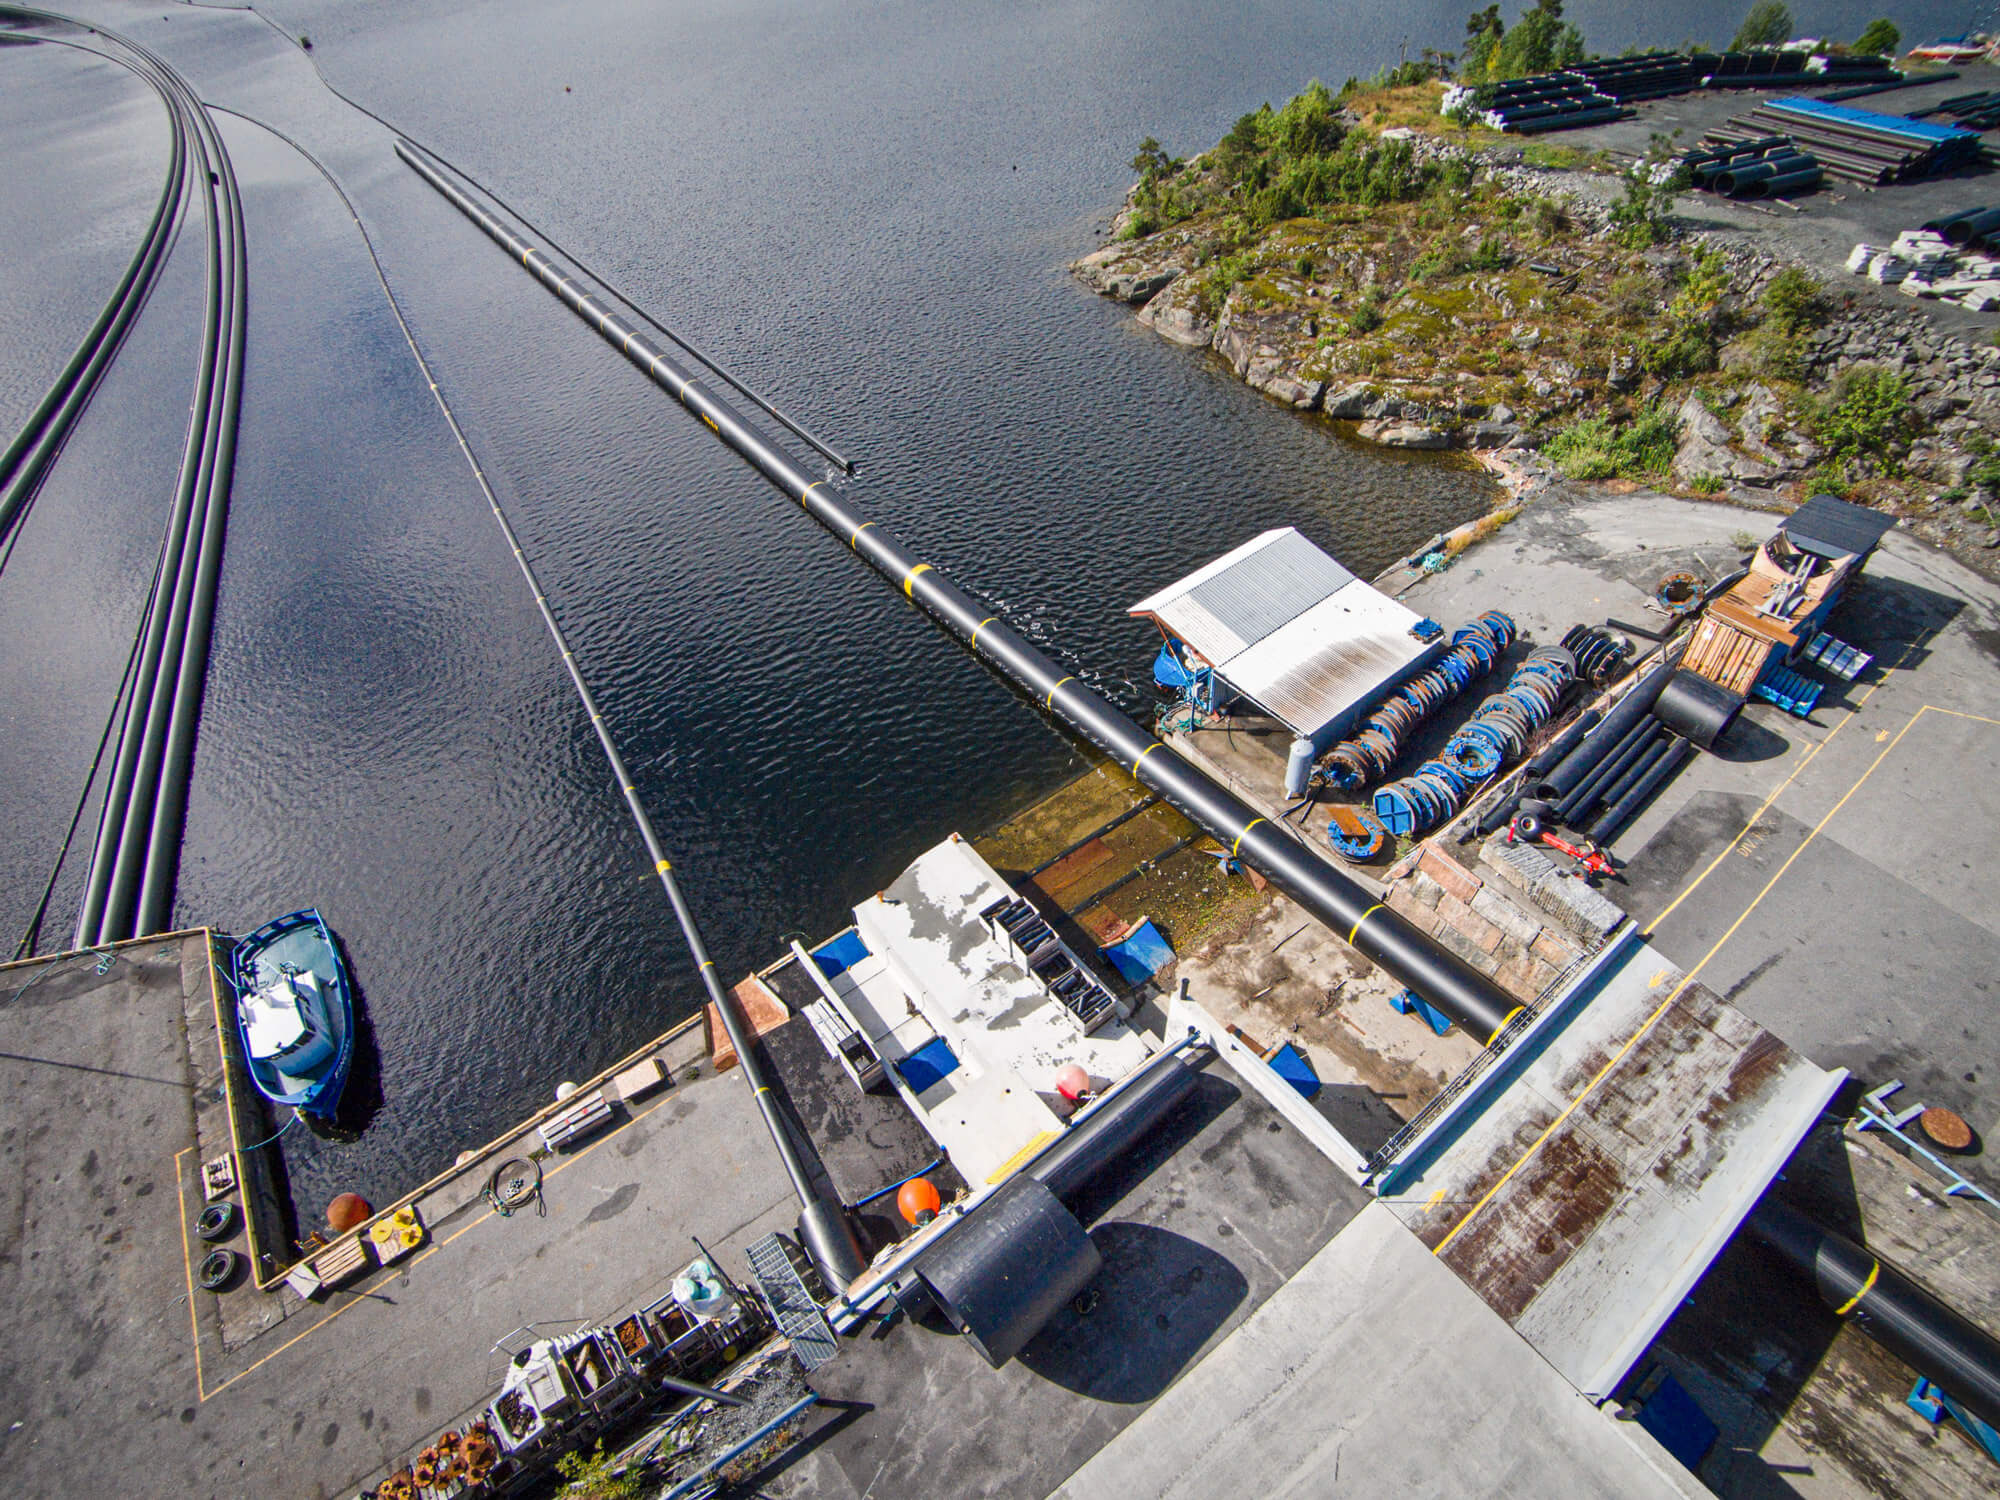 Pipelife extrudes kilometers of pipelines straight into the ocean